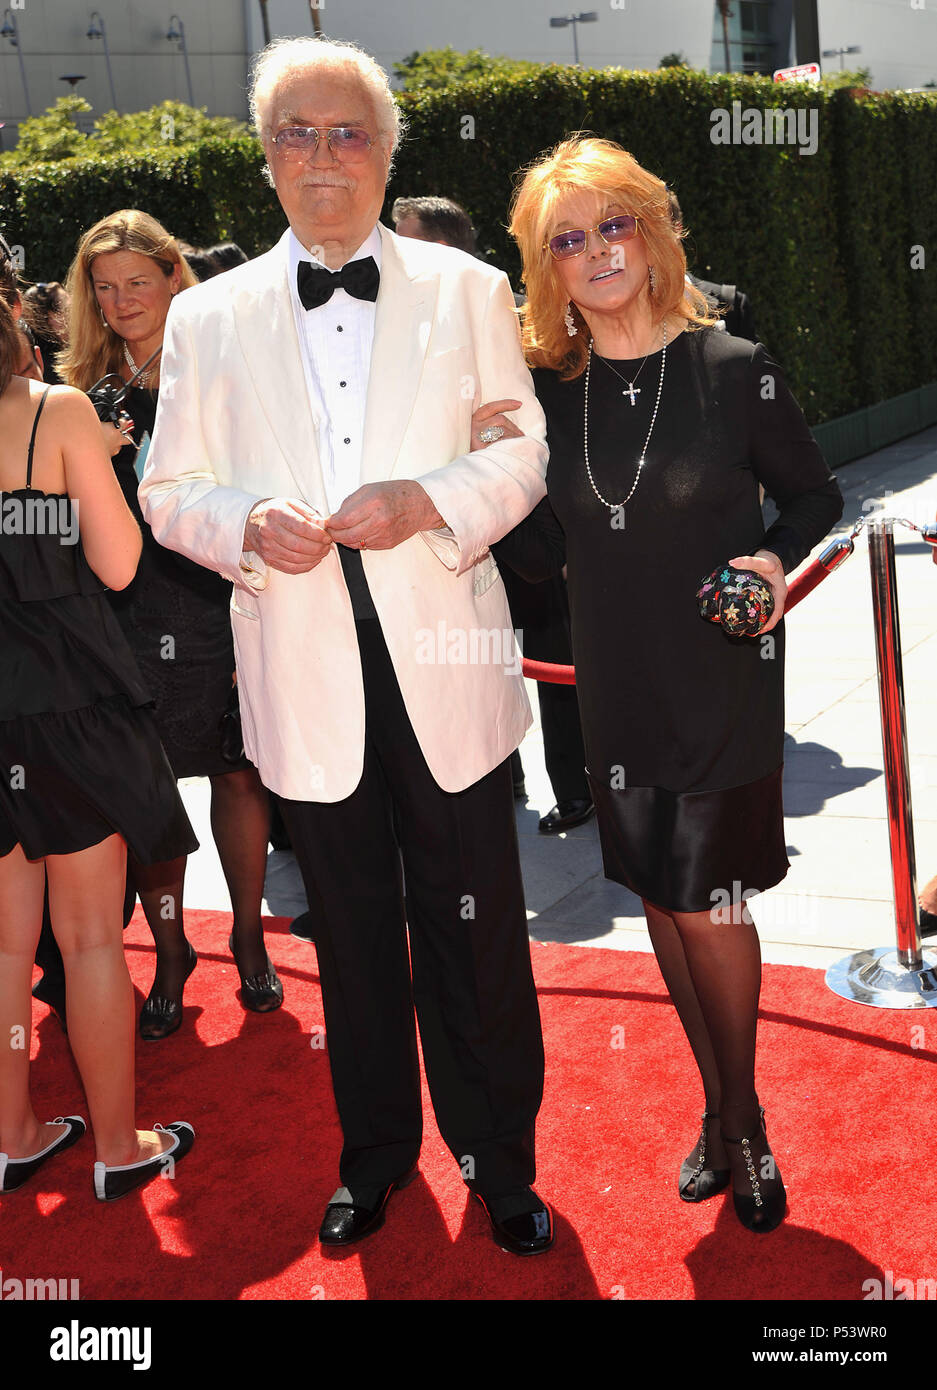 Ann-Margret and Roger Smith 2010 Creative Emmy Awards at the Nokia Theatre In Los Angeles.AnnMargret_RogerSmith_95  Event in Hollywood Life - California, Red Carpet Event, USA, Film Industry, Celebrities, Photography, Bestof, Arts Culture and Entertainment, Celebrities fashion, Best of, Hollywood Life, Event in Hollywood Life - California, Red Carpet and backstage, Music celebrities, Topix, Couple, family ( husband and wife ) and kids- Children, brothers and sisters inquiry tsuni@Gamma-USA.com, Credit Tsuni / USA, 2010 - Stock Image